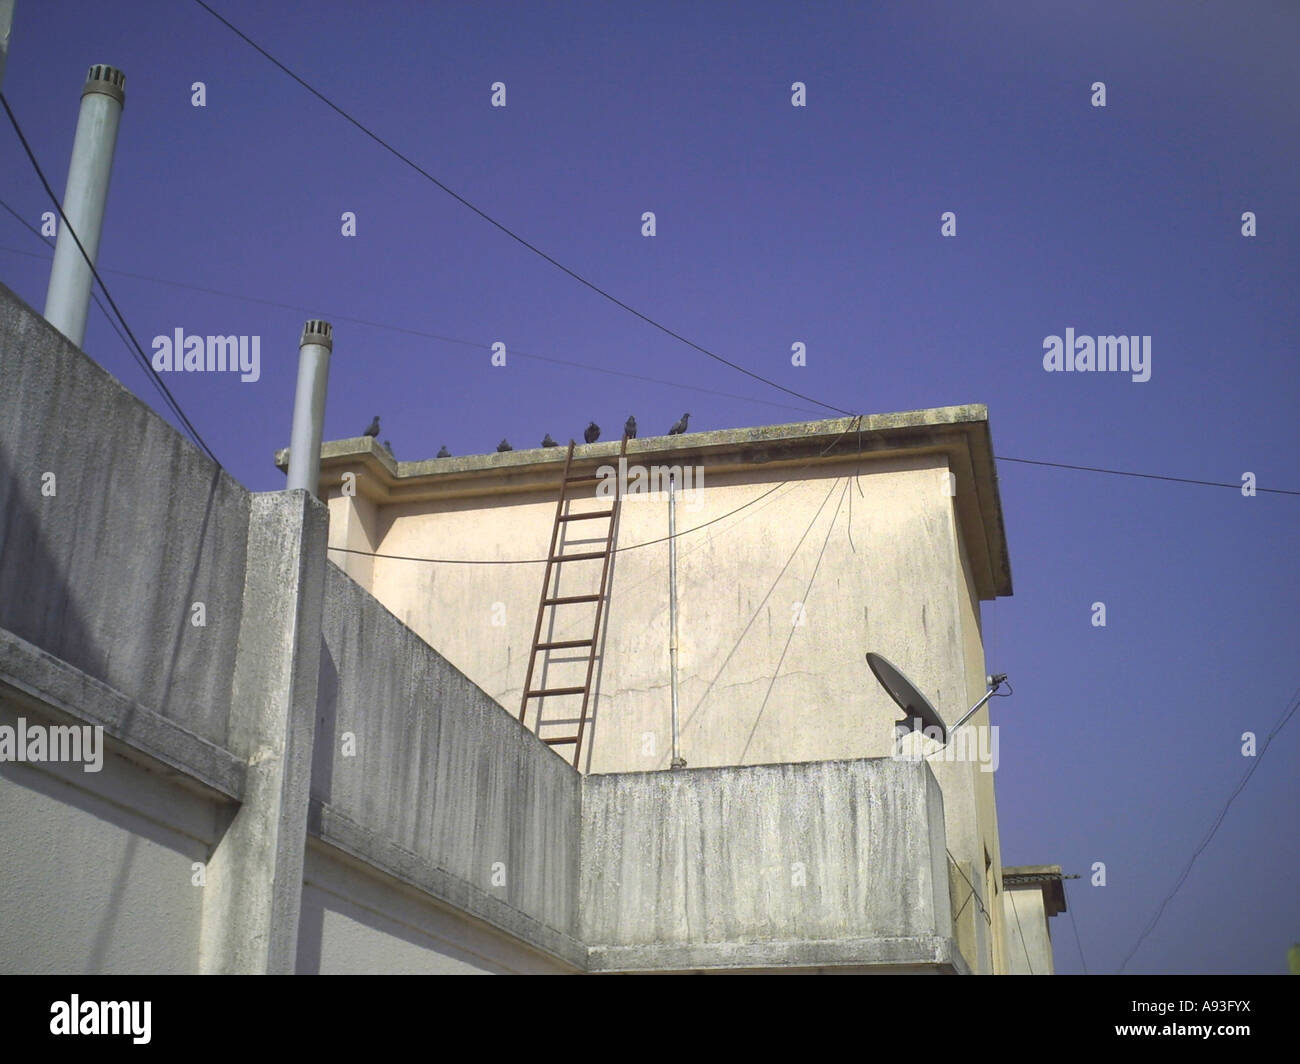 A ladder going towards an overhead water storage tank on a building terrace. Pune Maharashtra India. : water storage tanks in india  - Aquiesqueretaro.Com